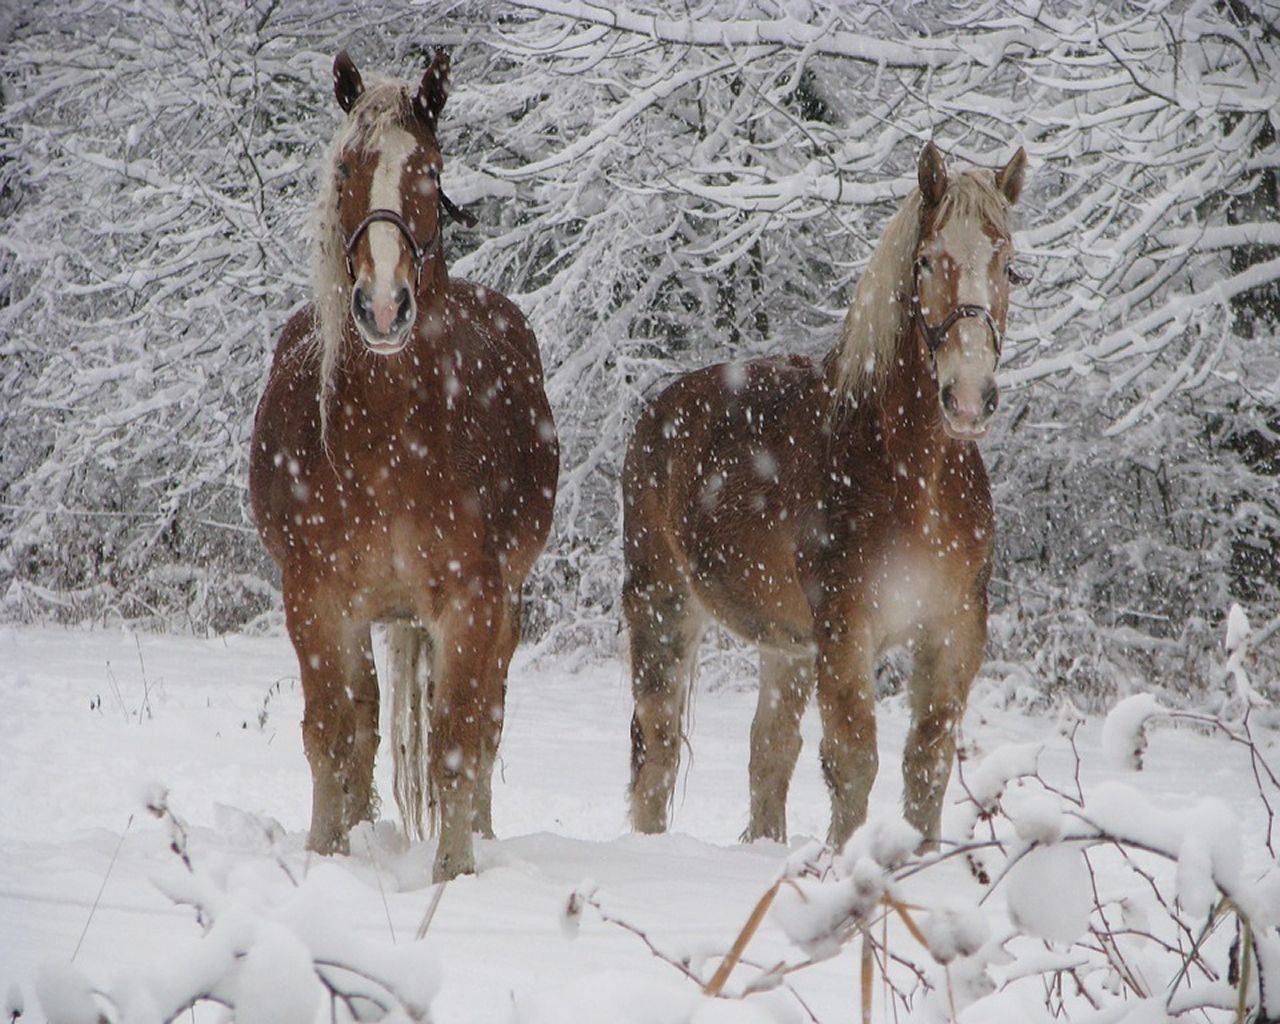 Simple Wallpaper Horse Winter - dec112015_1280x1024  Pictures_93628.jpg